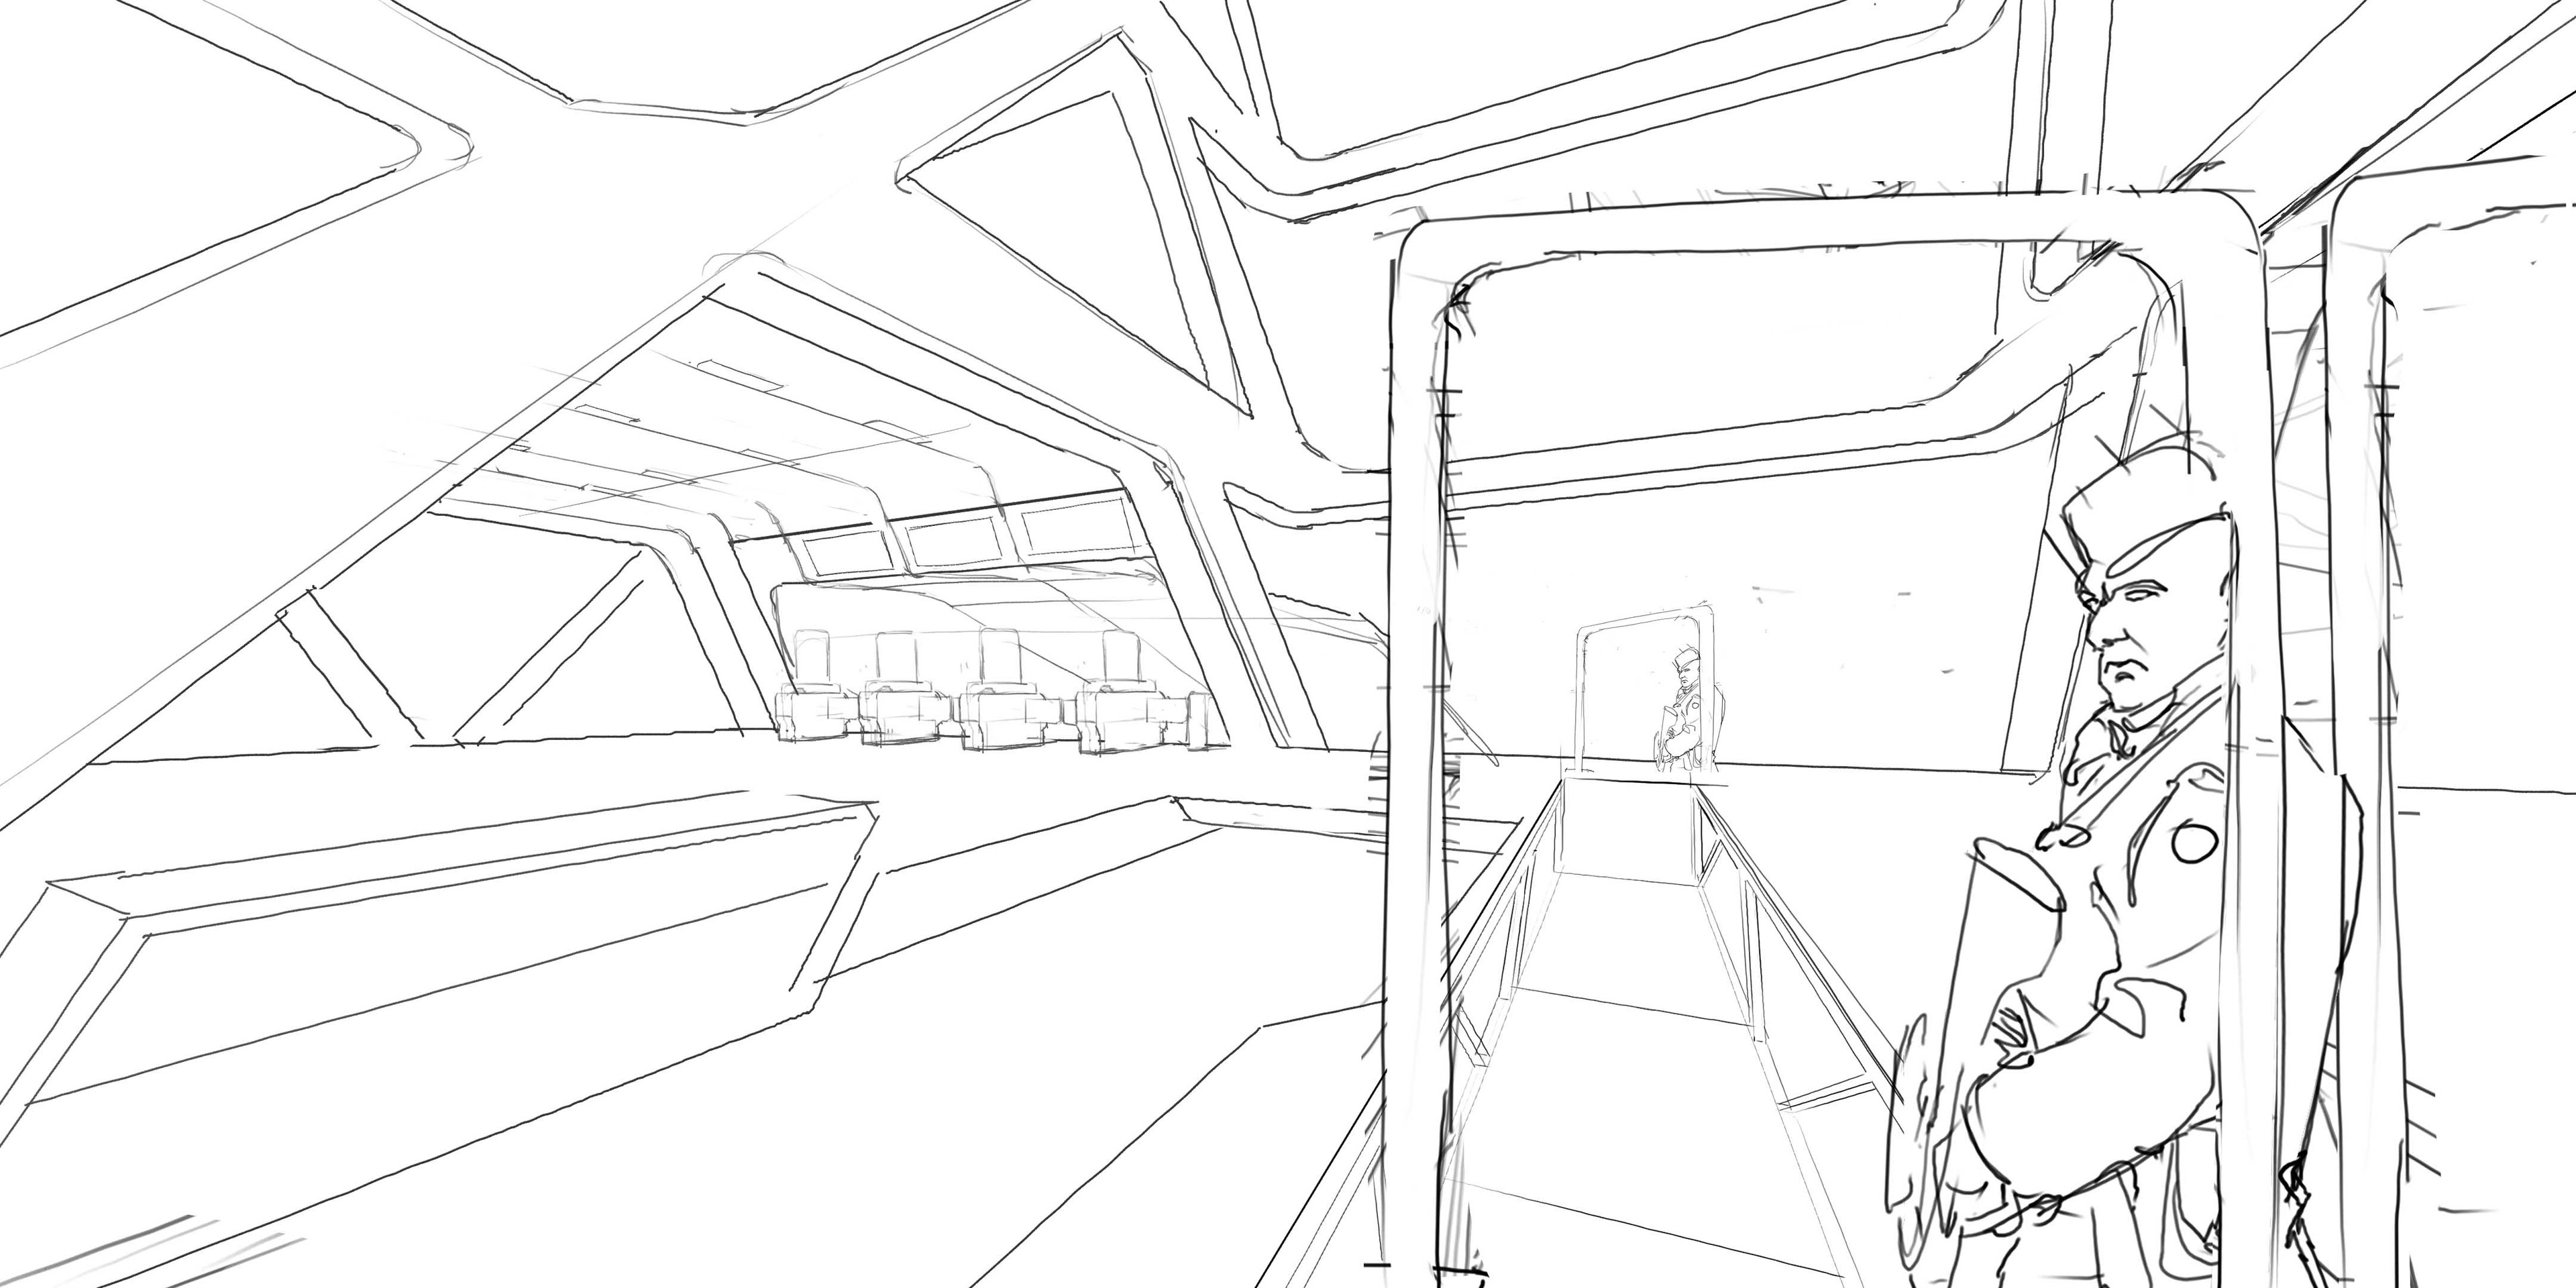 Starting sketch on 1 point perspective.